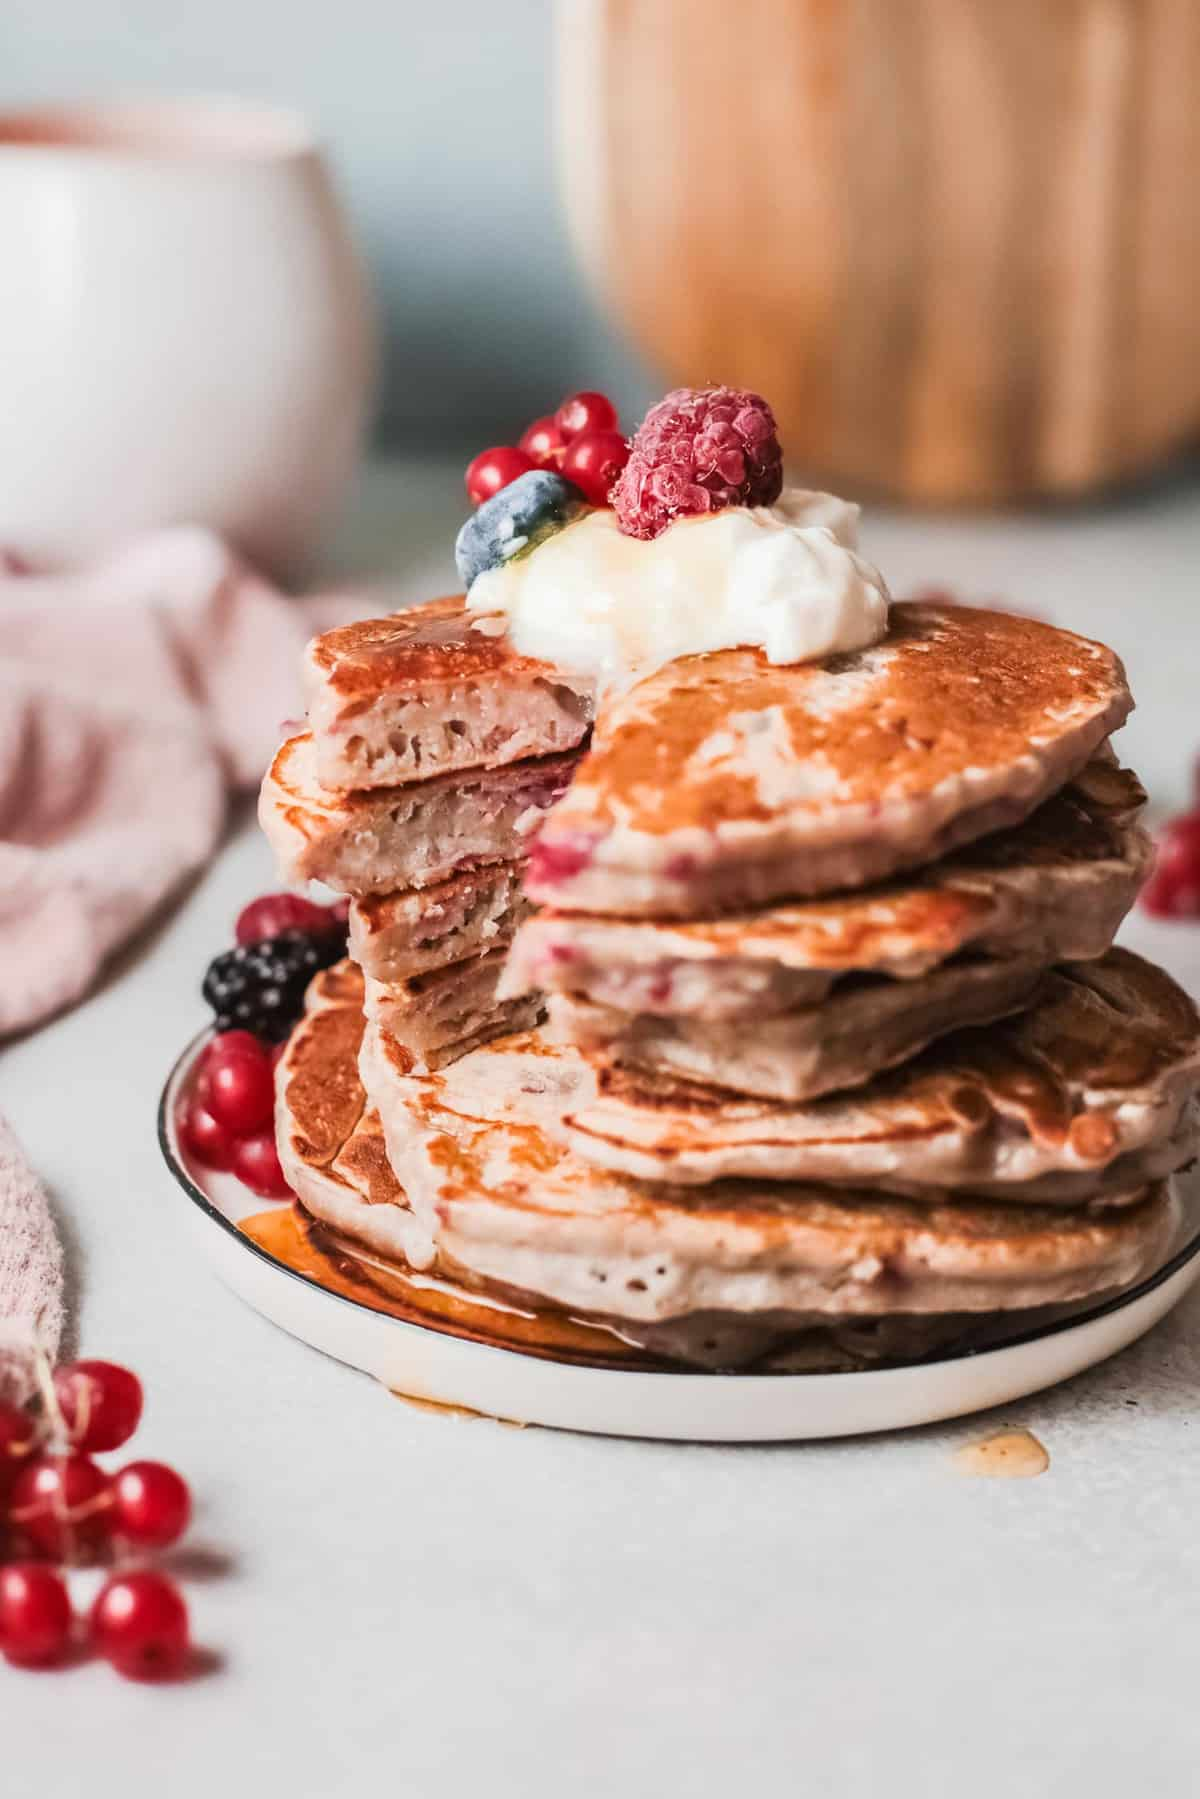 Pancake stack with a wedge cut out.